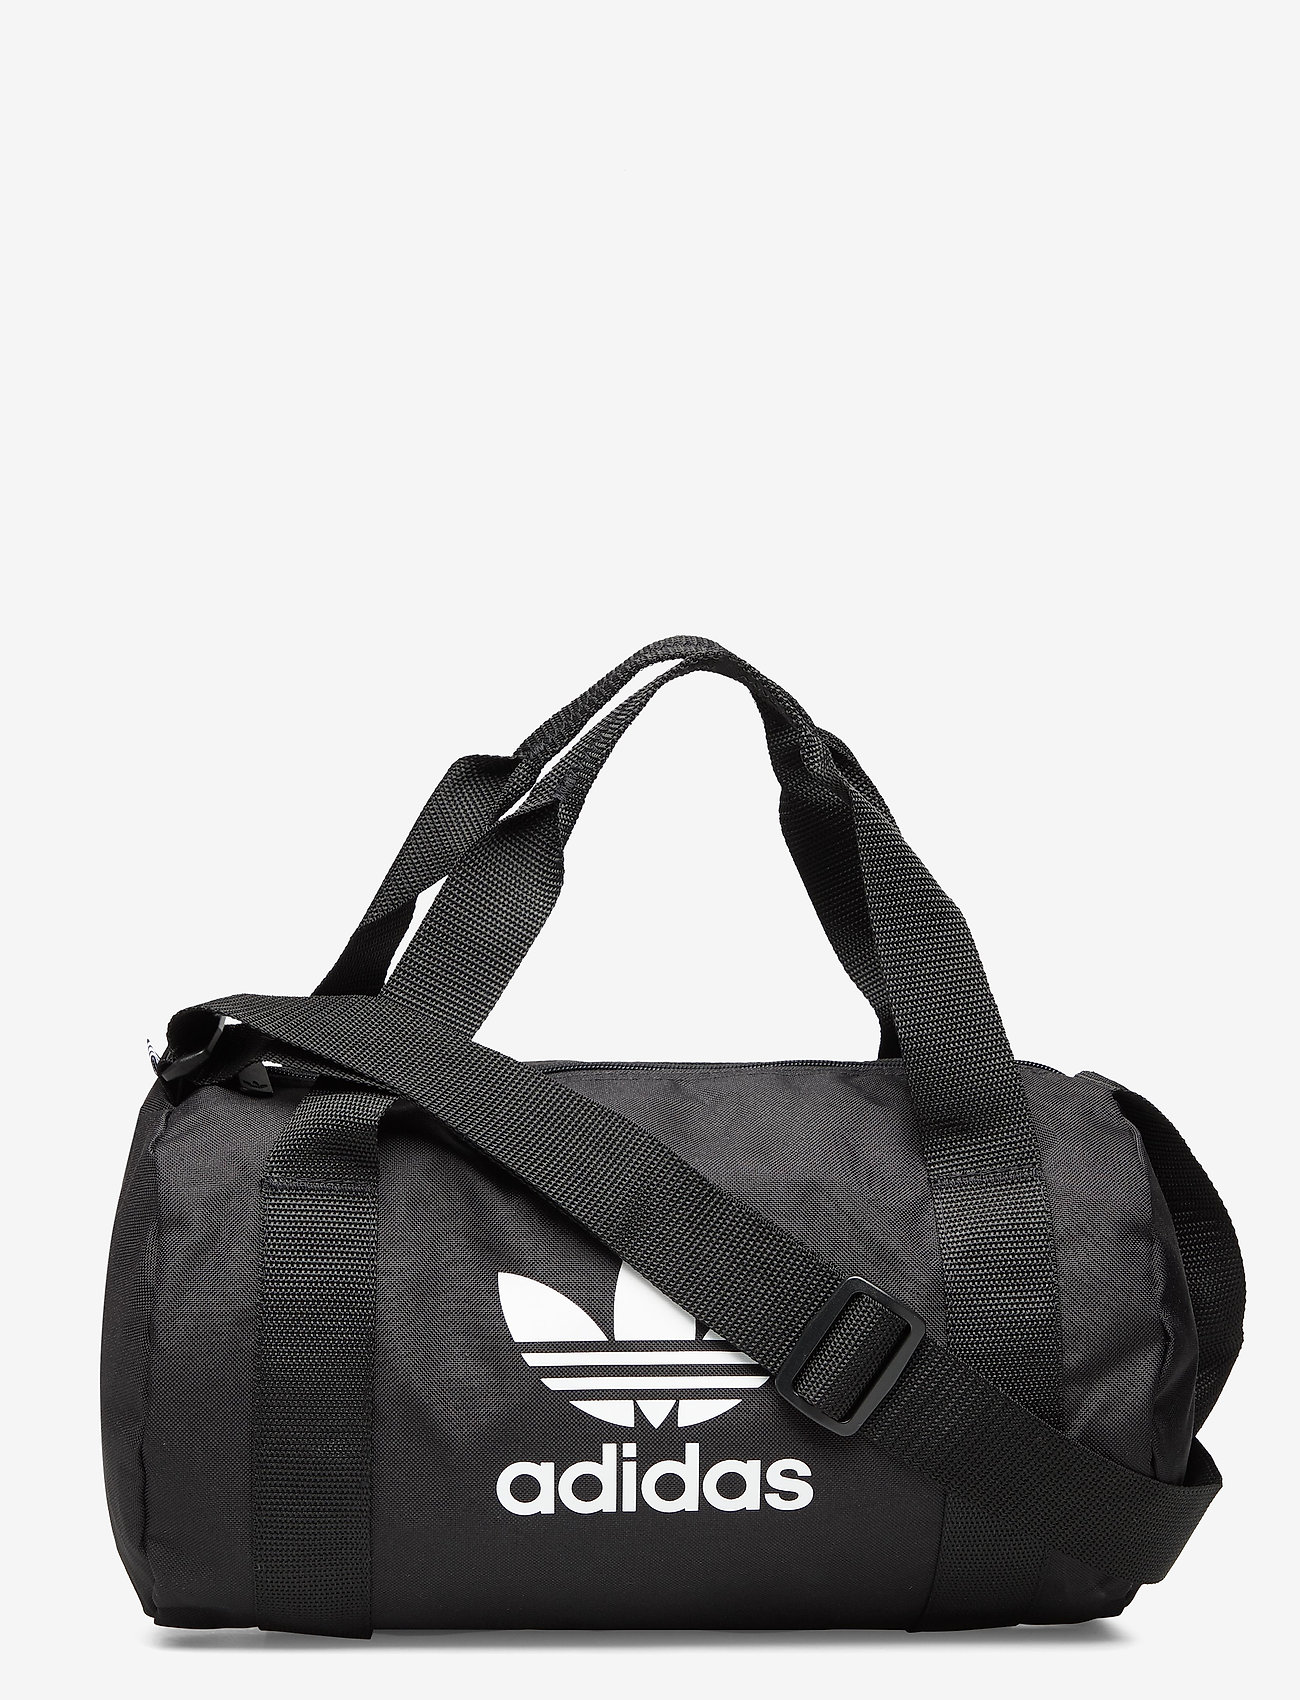 adidas Originals - AC SHOULDER BAG - træningstasker - black - 0